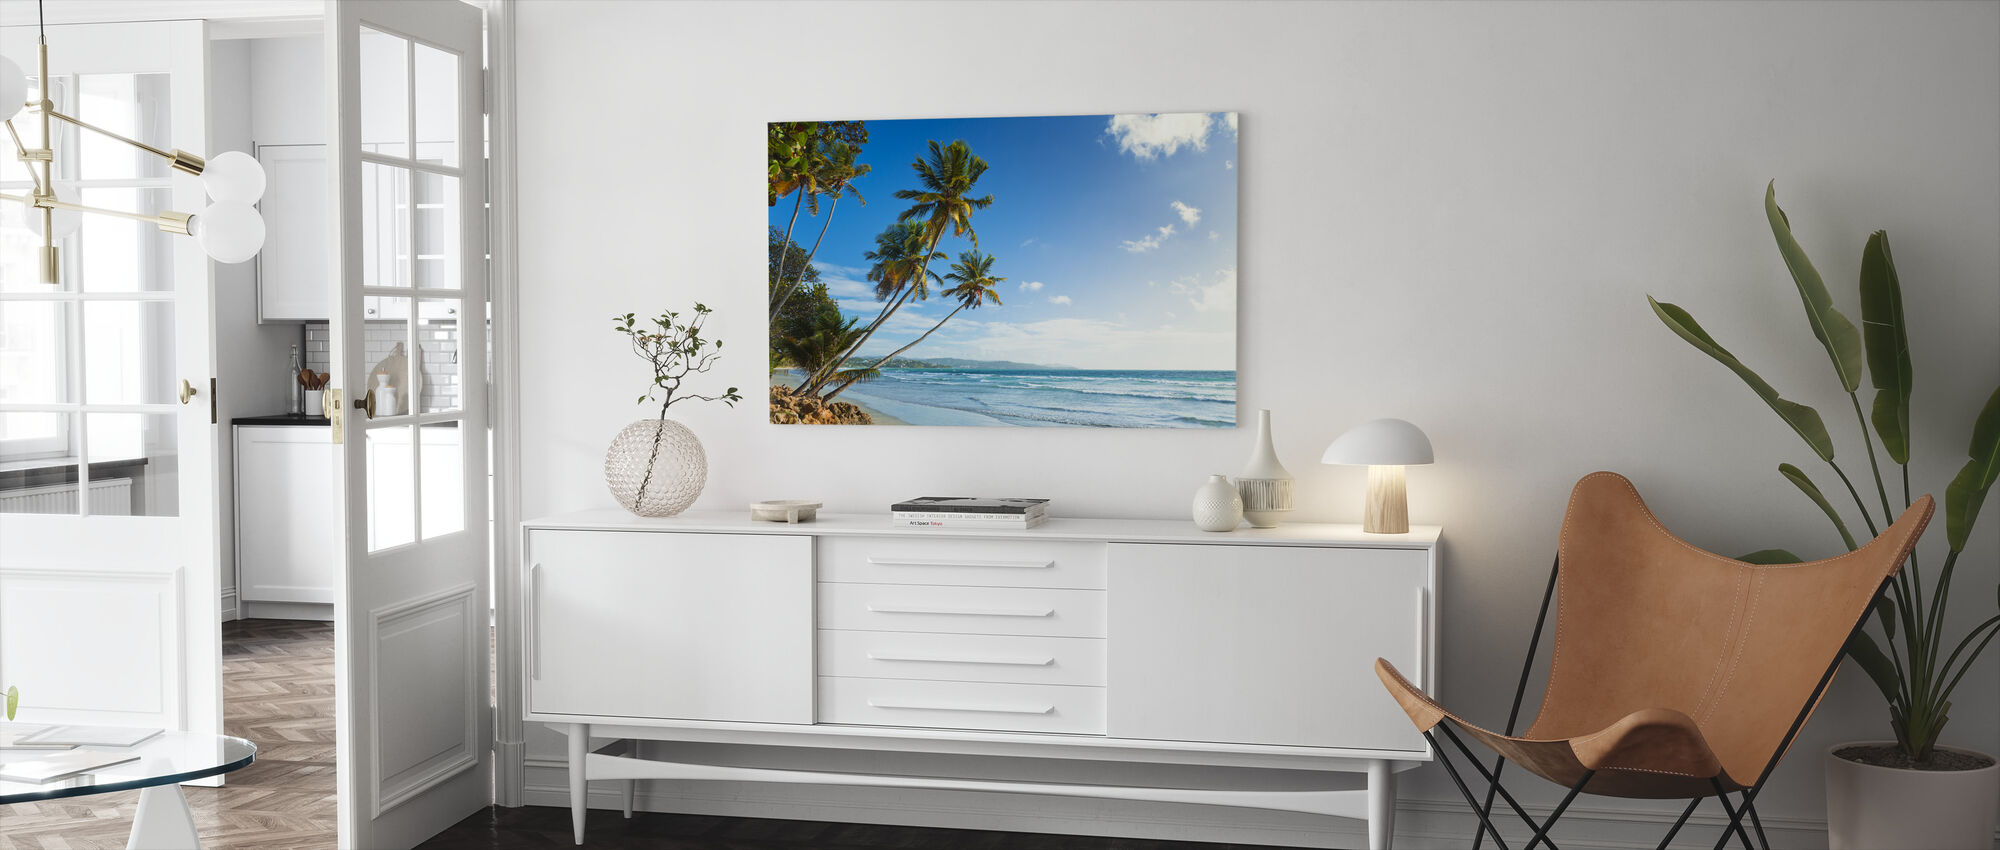 Palms and Beach, Trinidad and Tobago - Canvas print - Living Room